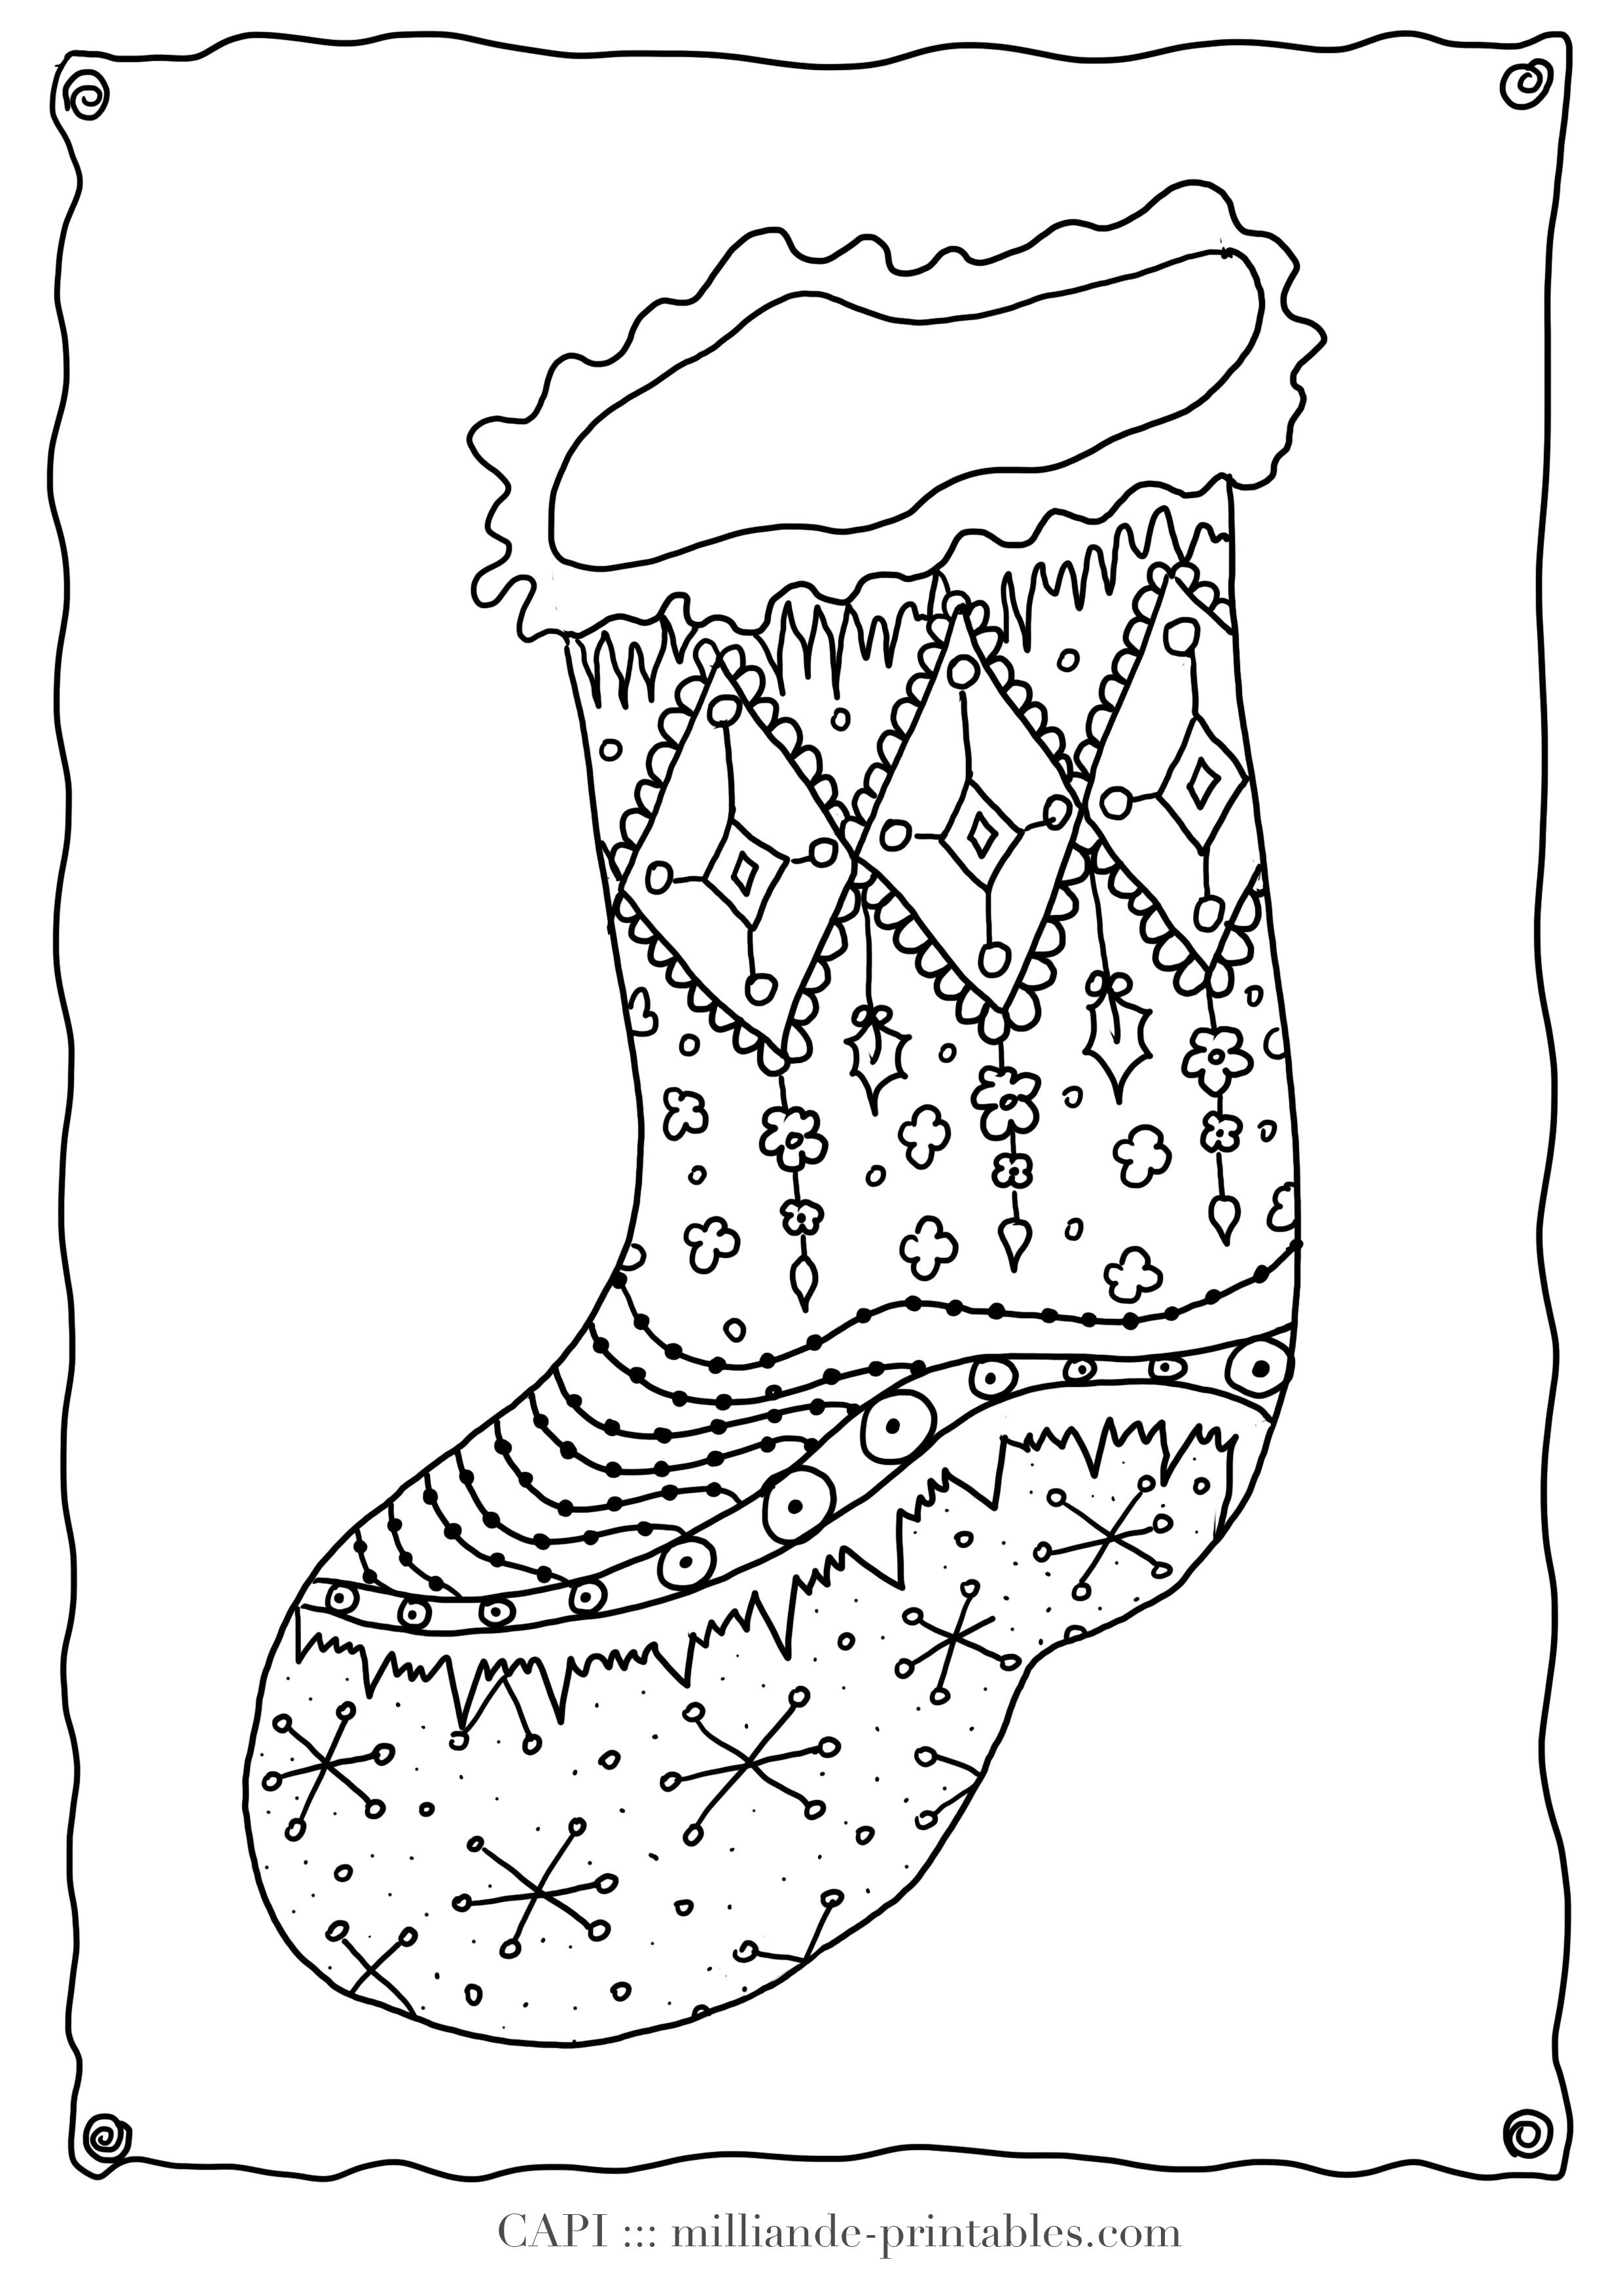 Cute Christmas Stocking Colouring Page For Kids From Our Free Christmas Colouring Sheets With